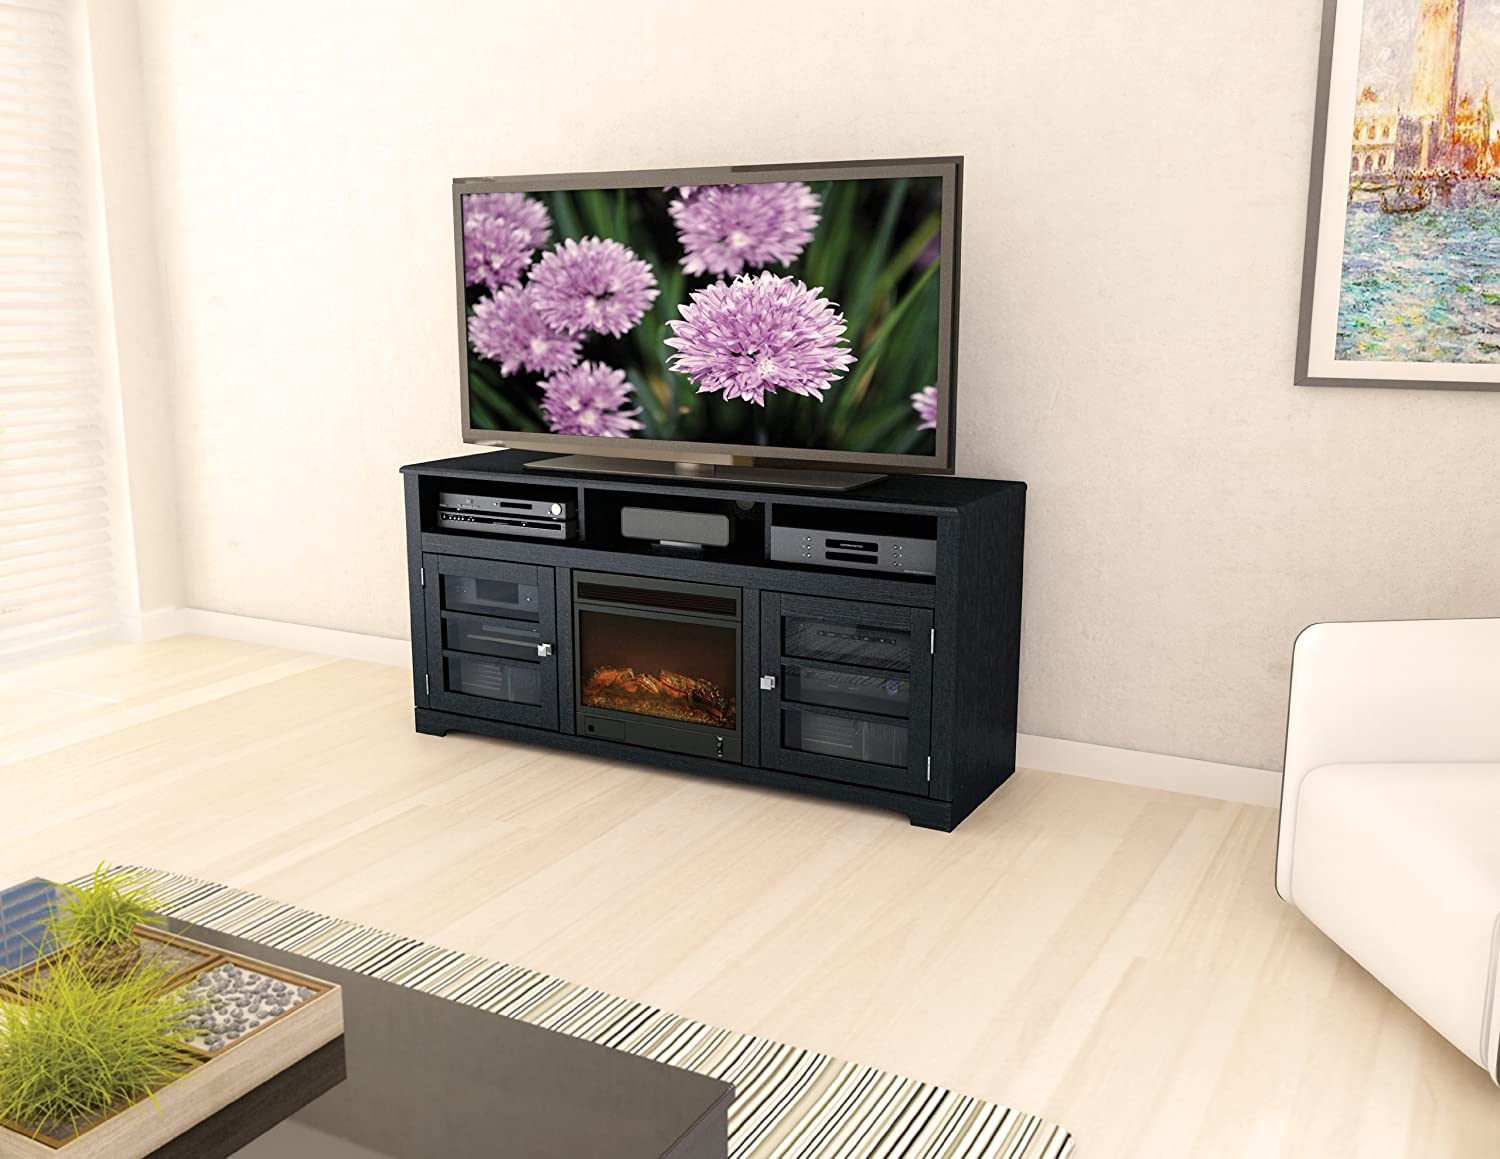 Sonax B 602 Bwt West Lake 60 Inch Television Bench Mocha Black  # Meuble Tv Separation Piece